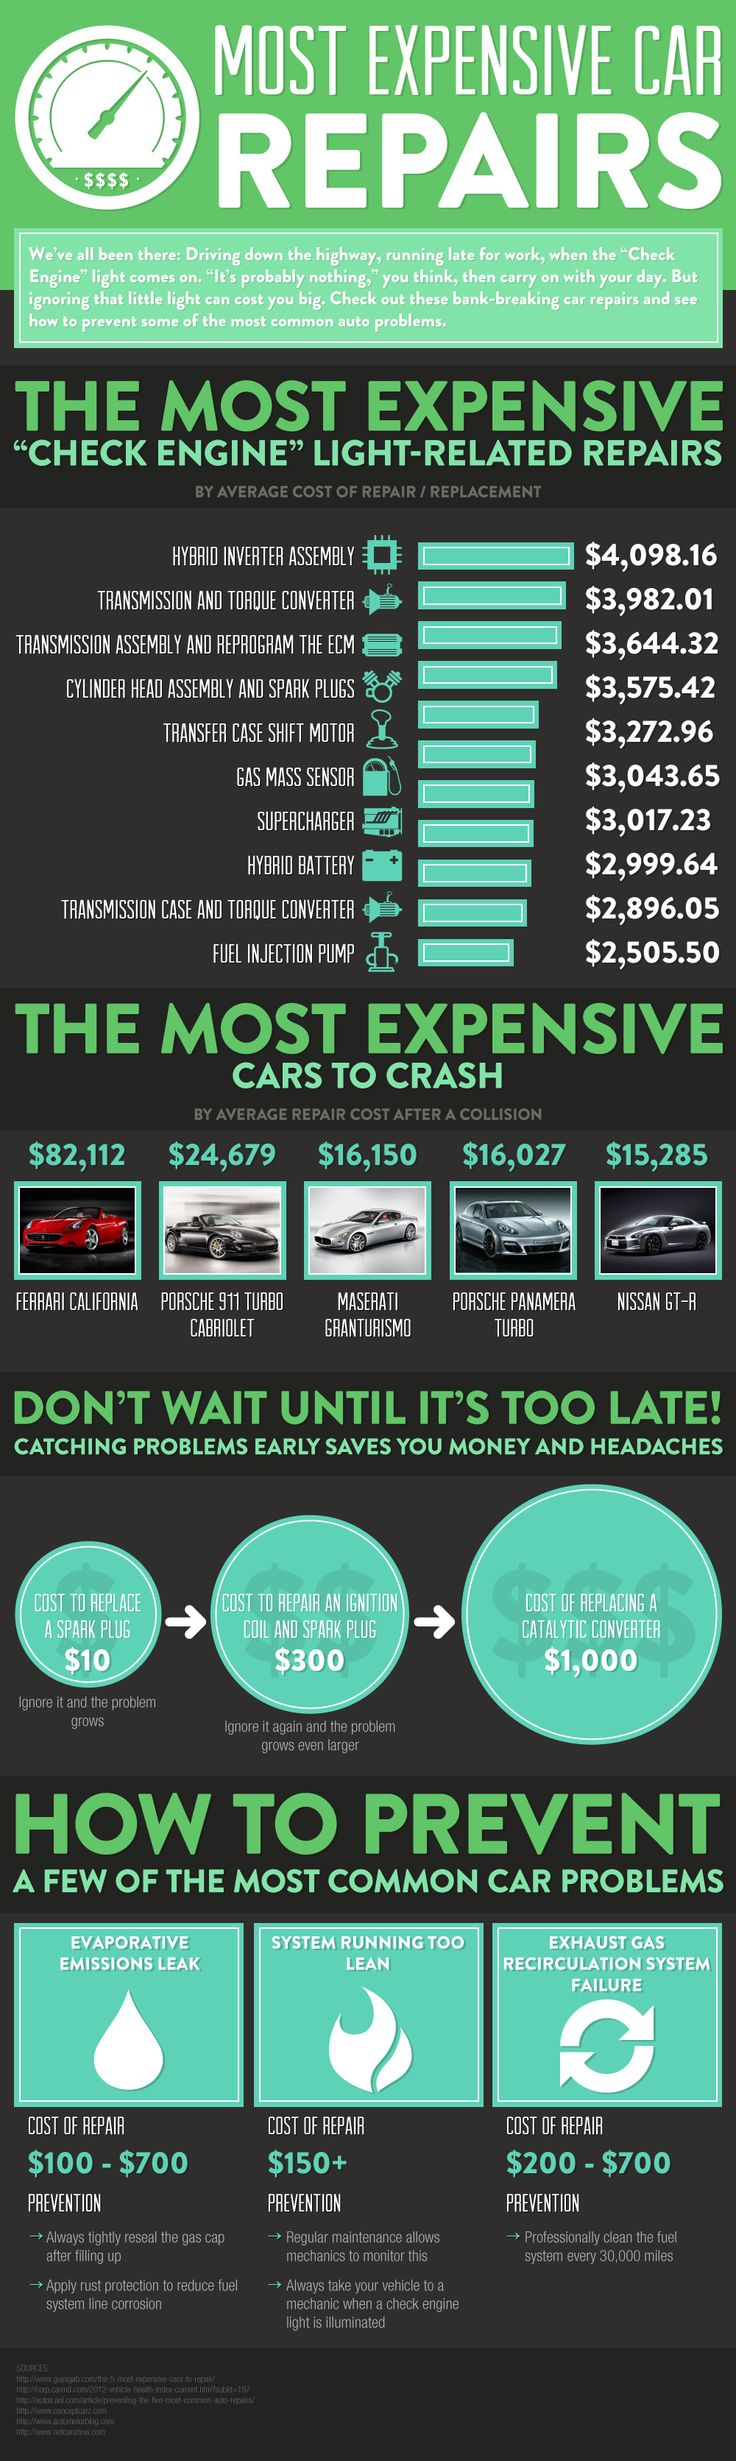 No one wants to be faced with expensive vehicle repairs. There are actually ways to increase the likelihood that your car will not break down, and considering the high cost of some of the repairs shown in this infographic, it only makes sense to follow the tips outlined on this page.